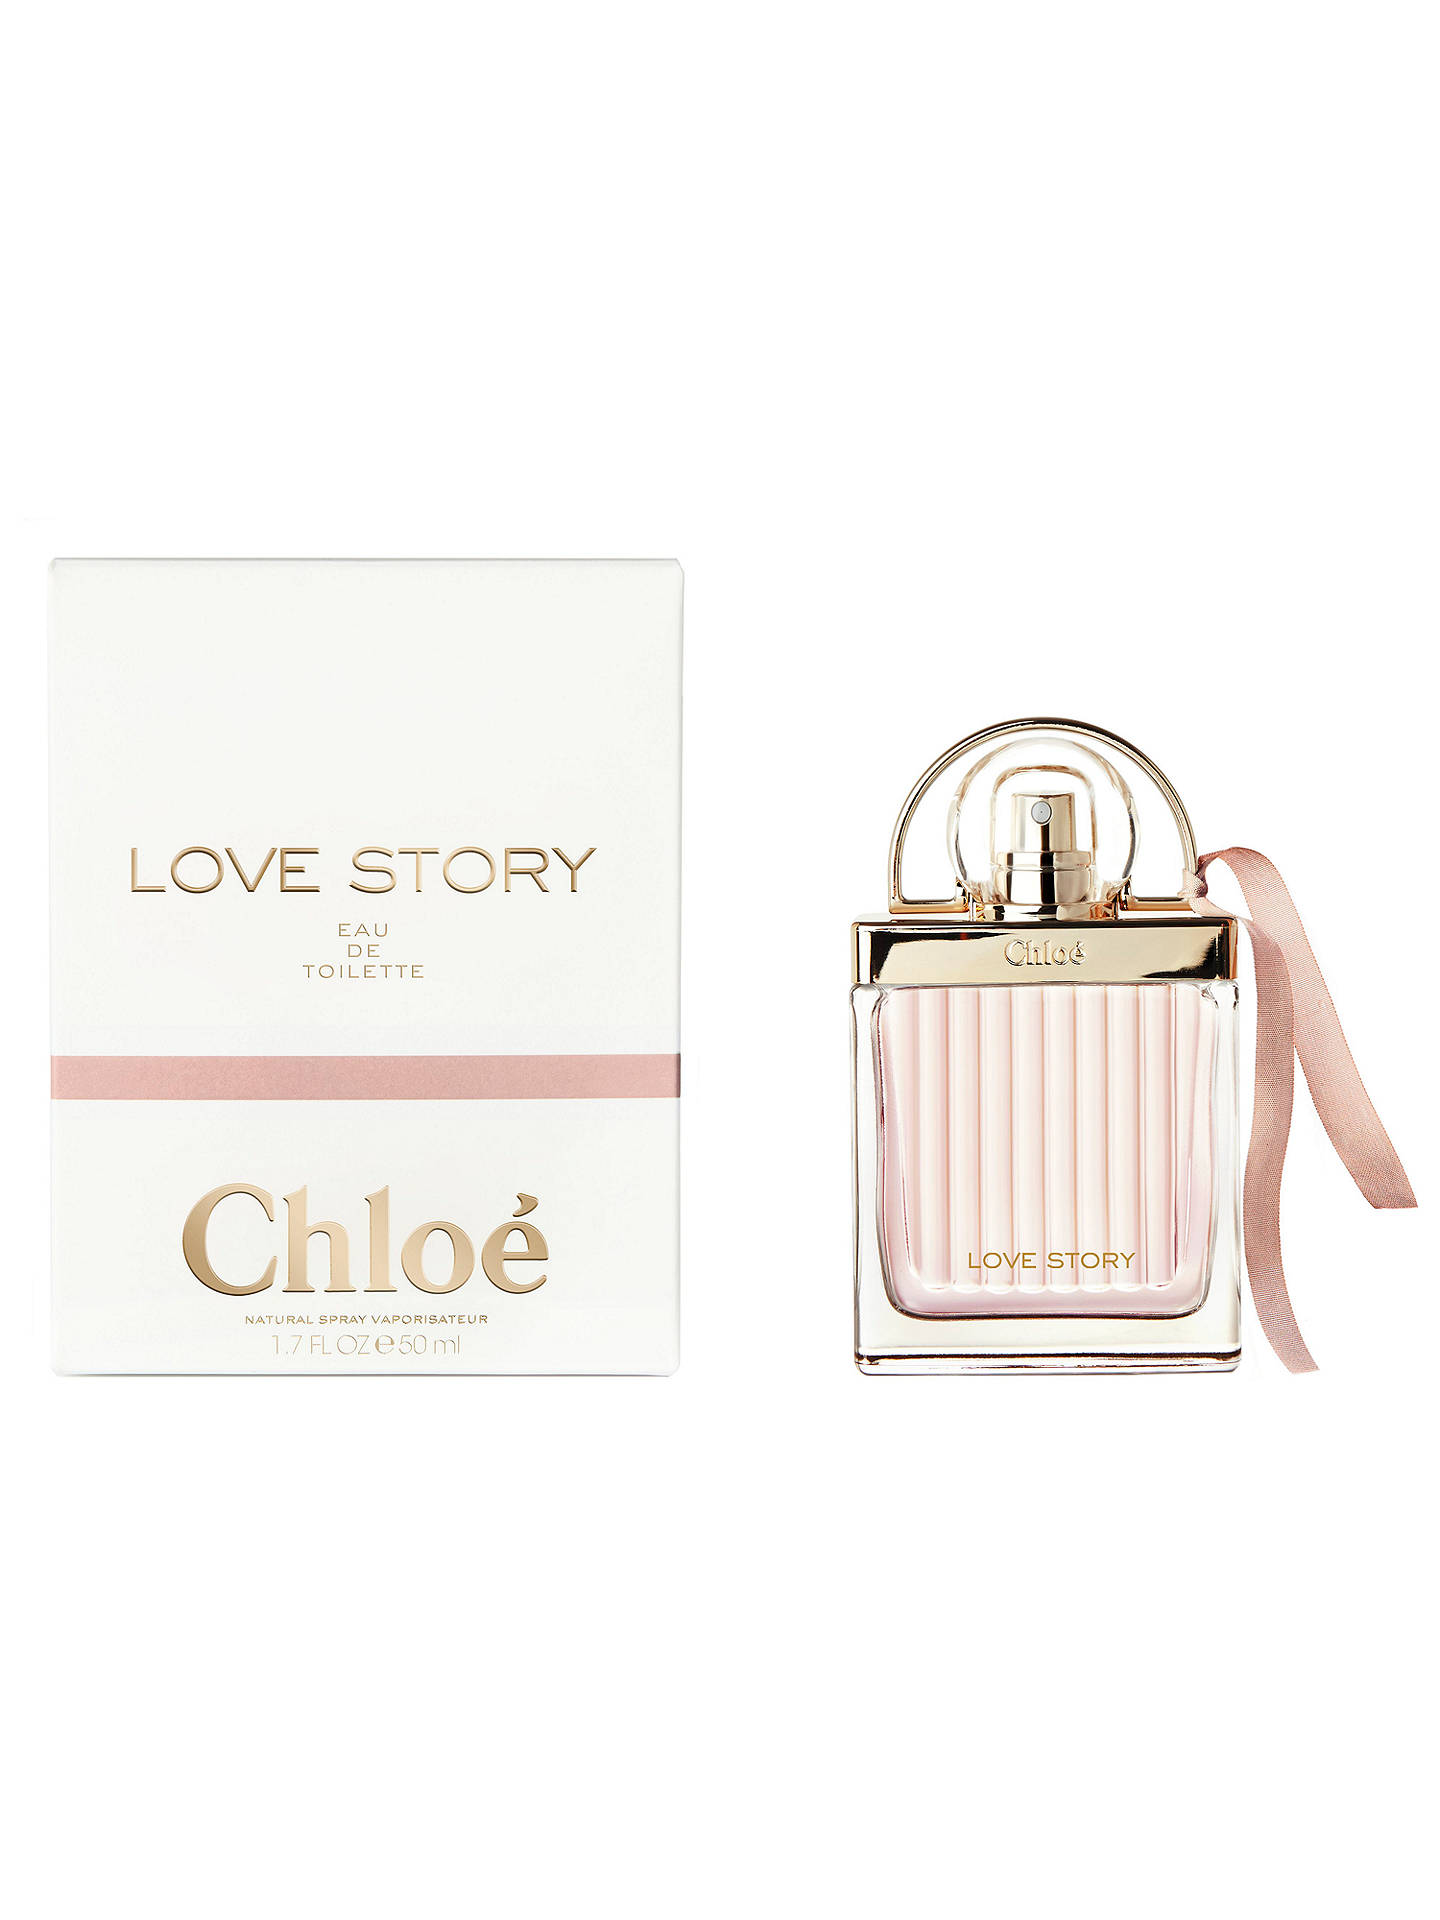 BuyChloé Love Story Eau de Toilette, 30ml Online at johnlewis.com